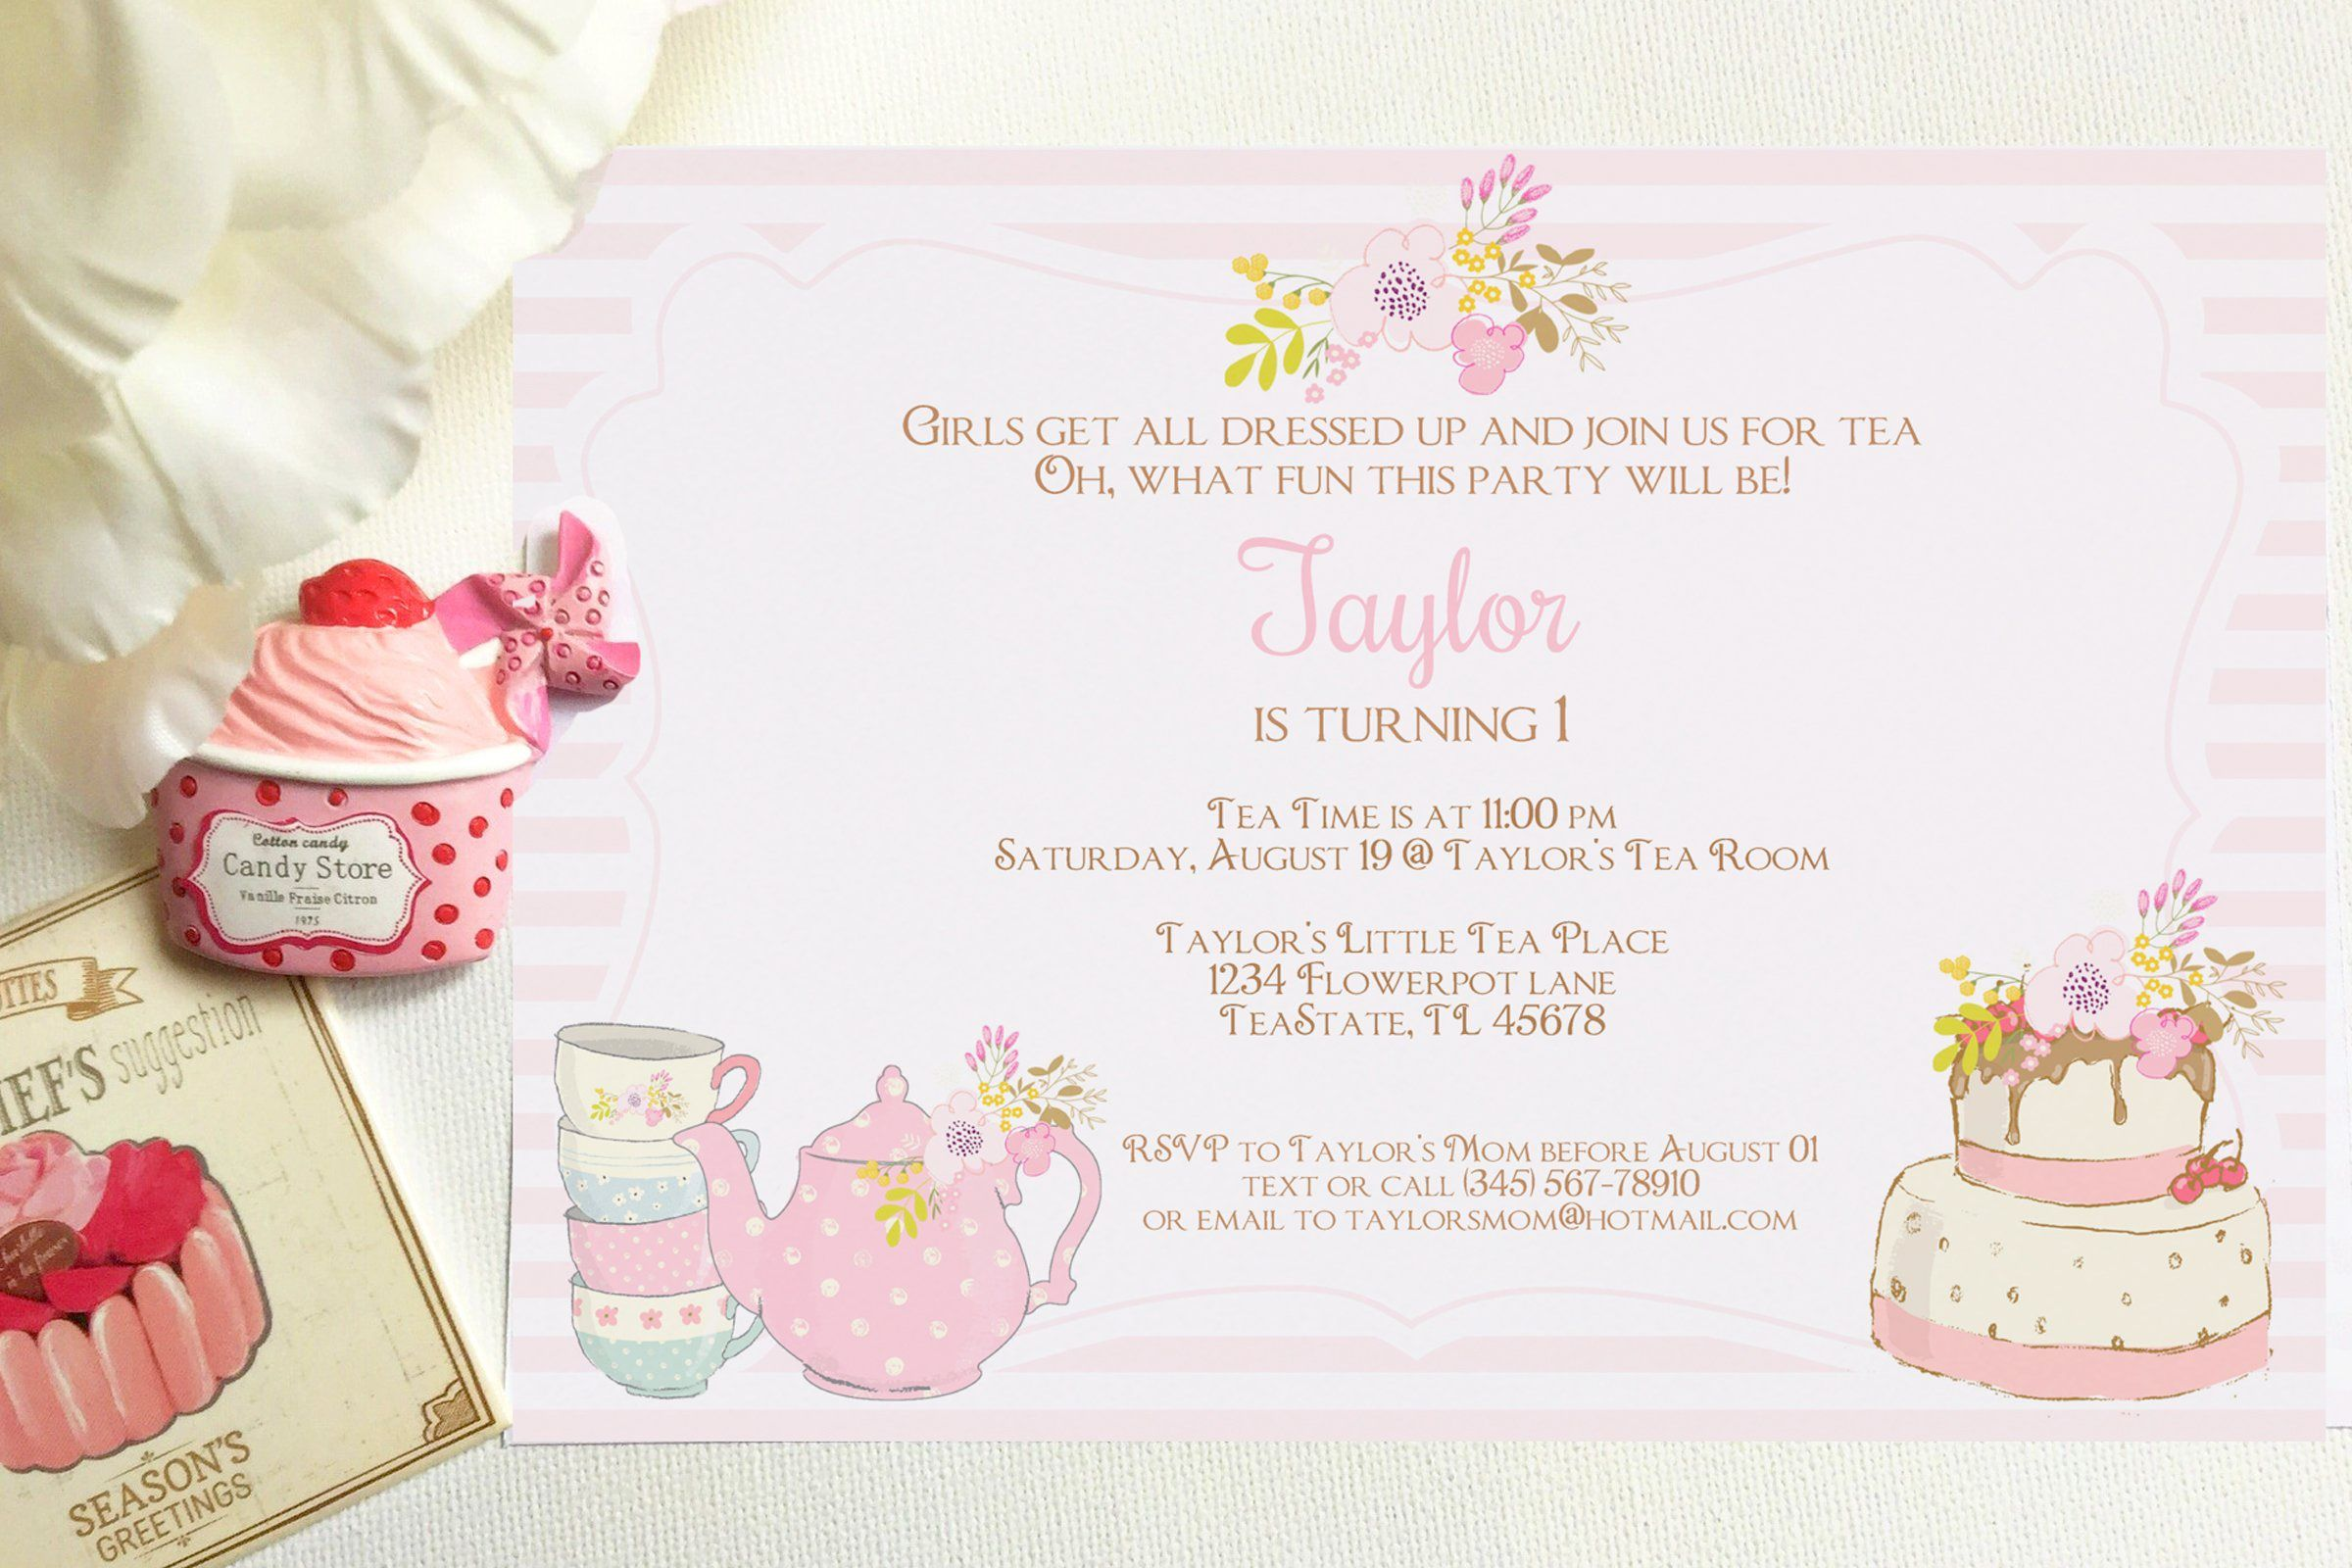 008 Outstanding Tea Party Invitation Template High Definition  Vintage Free Editable Card PdfFull